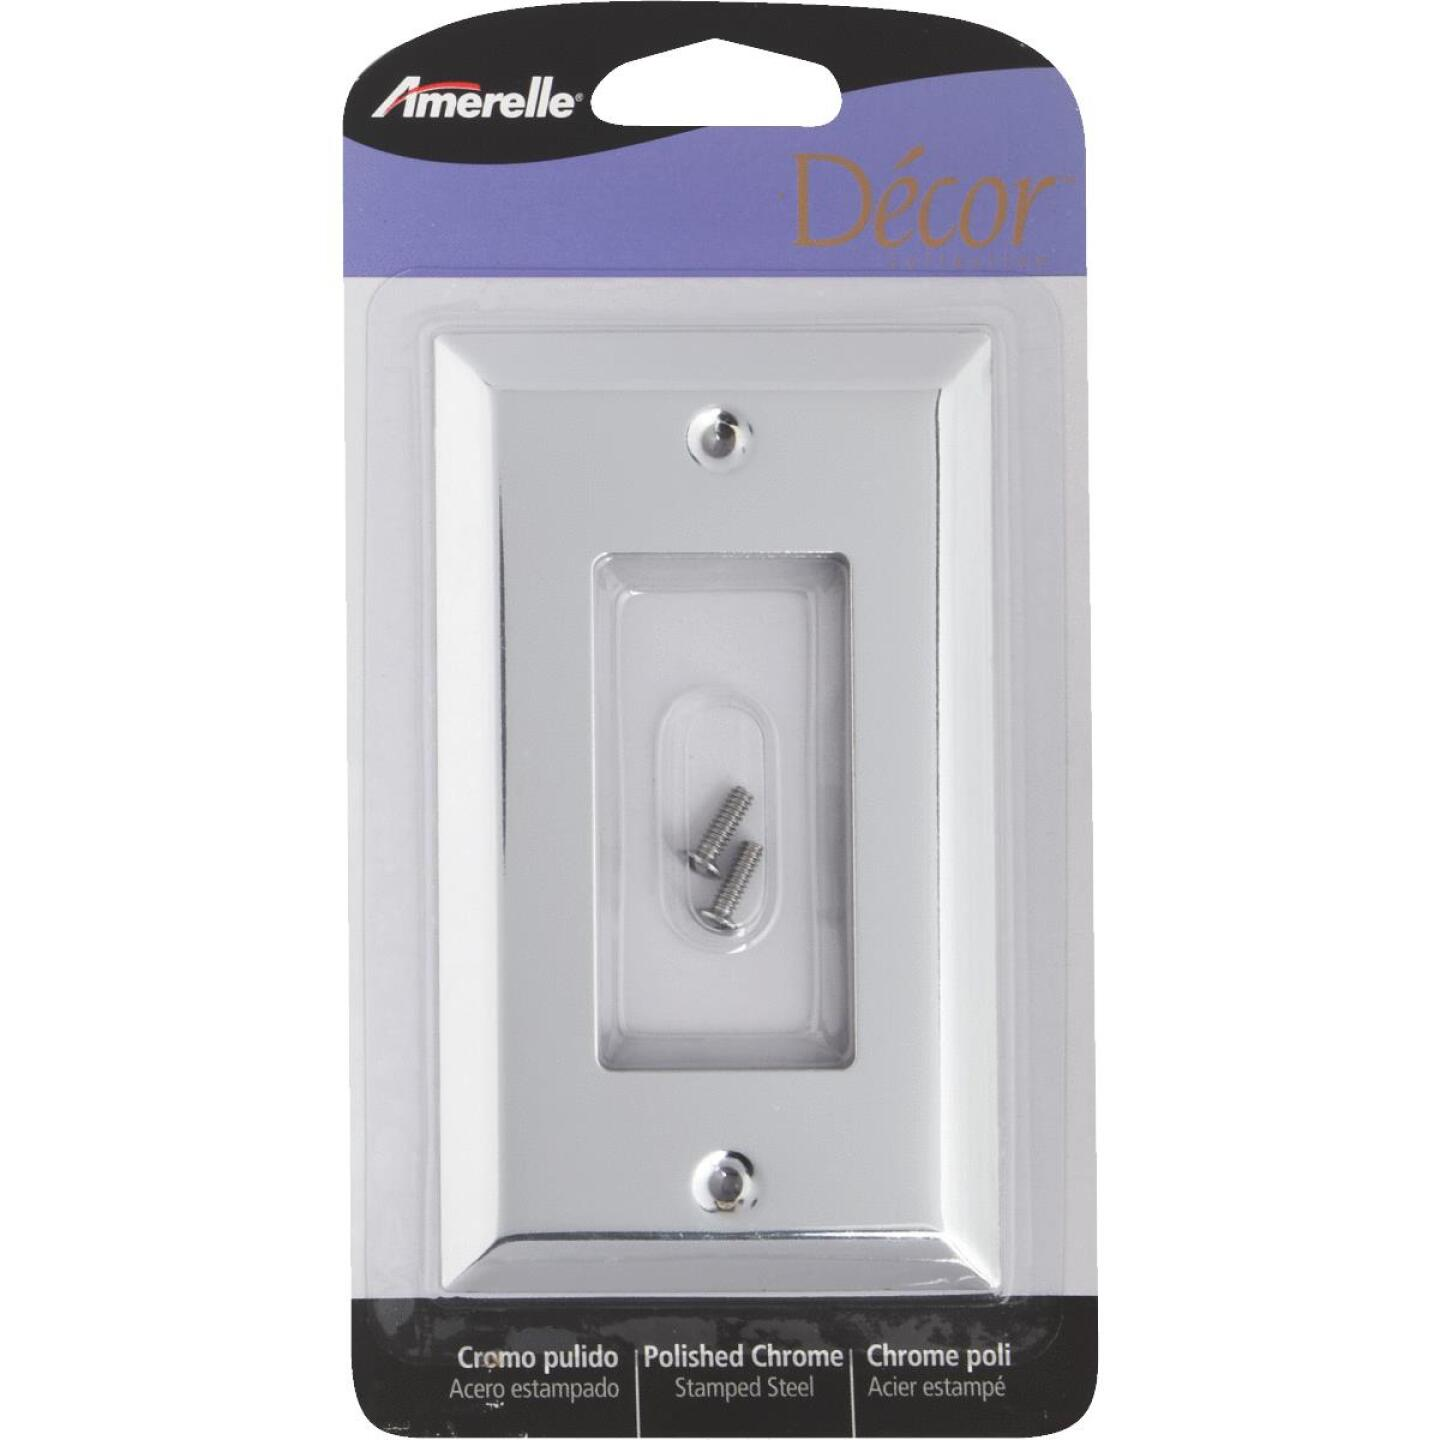 Amerelle 1-Gang Stamped Steel Rocker Decorator Wall Plate, Polished Chrome Image 2